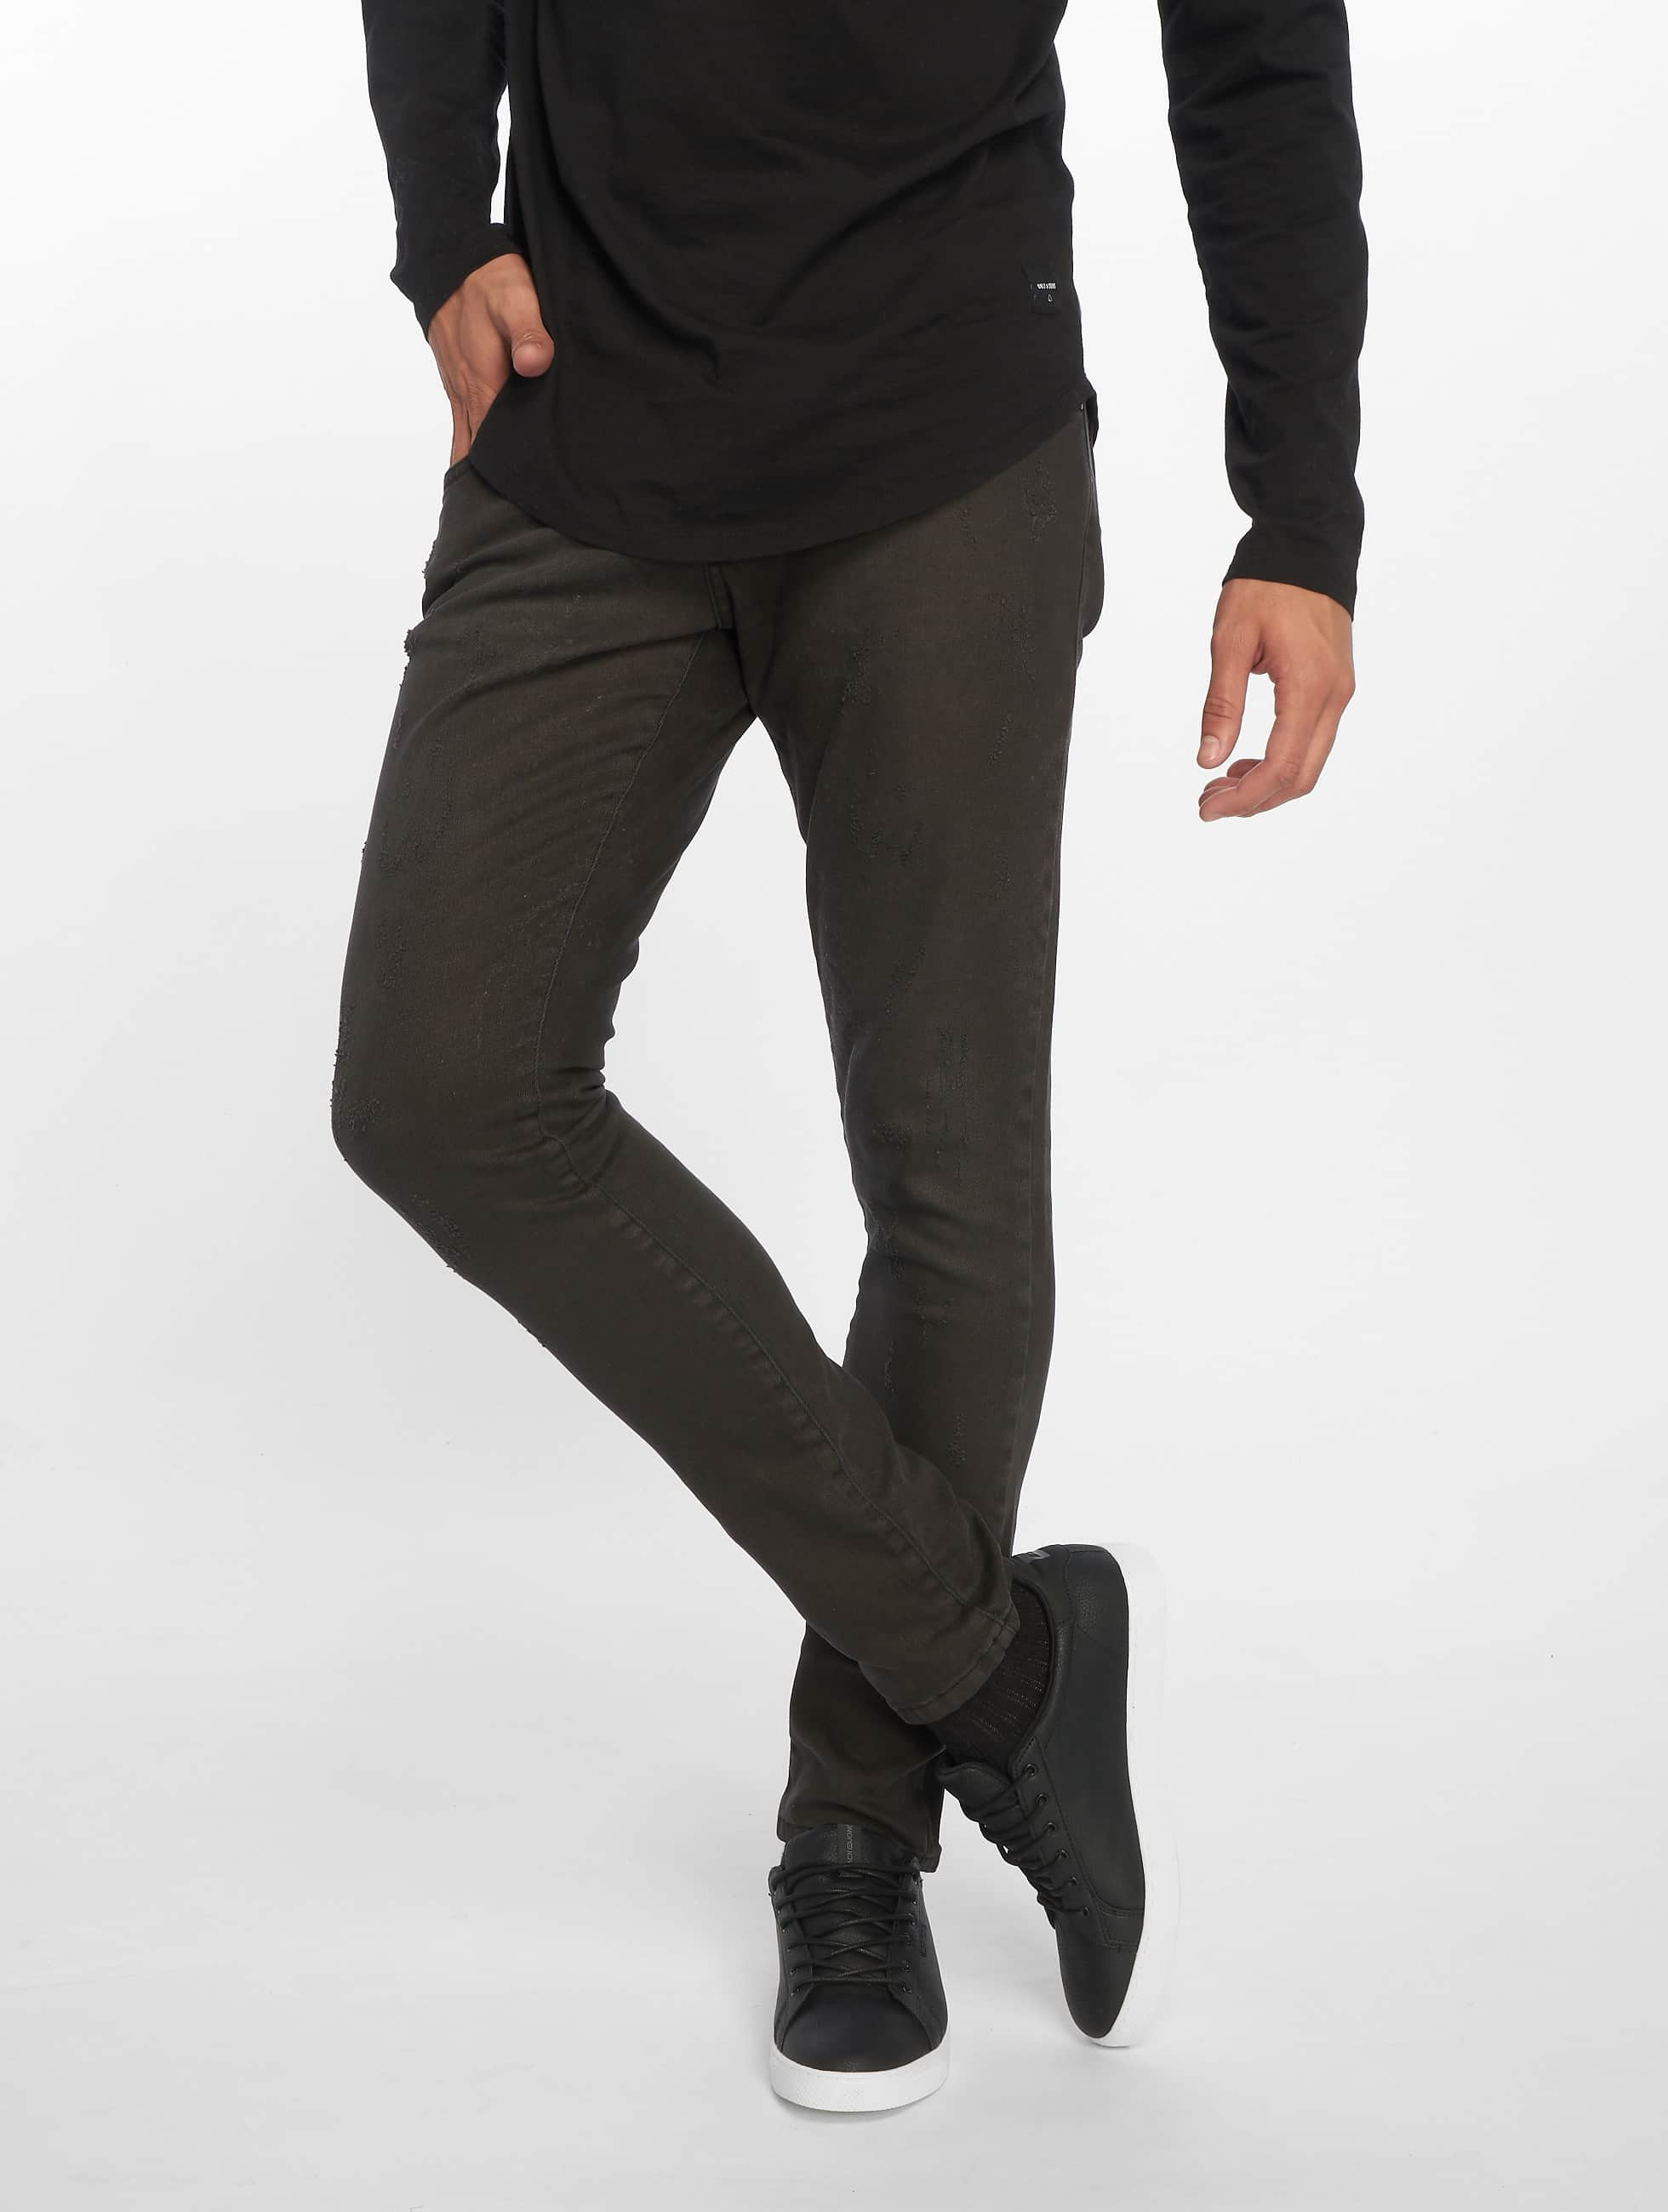 2Y / Slim Fit Jeans Terry in black W 34